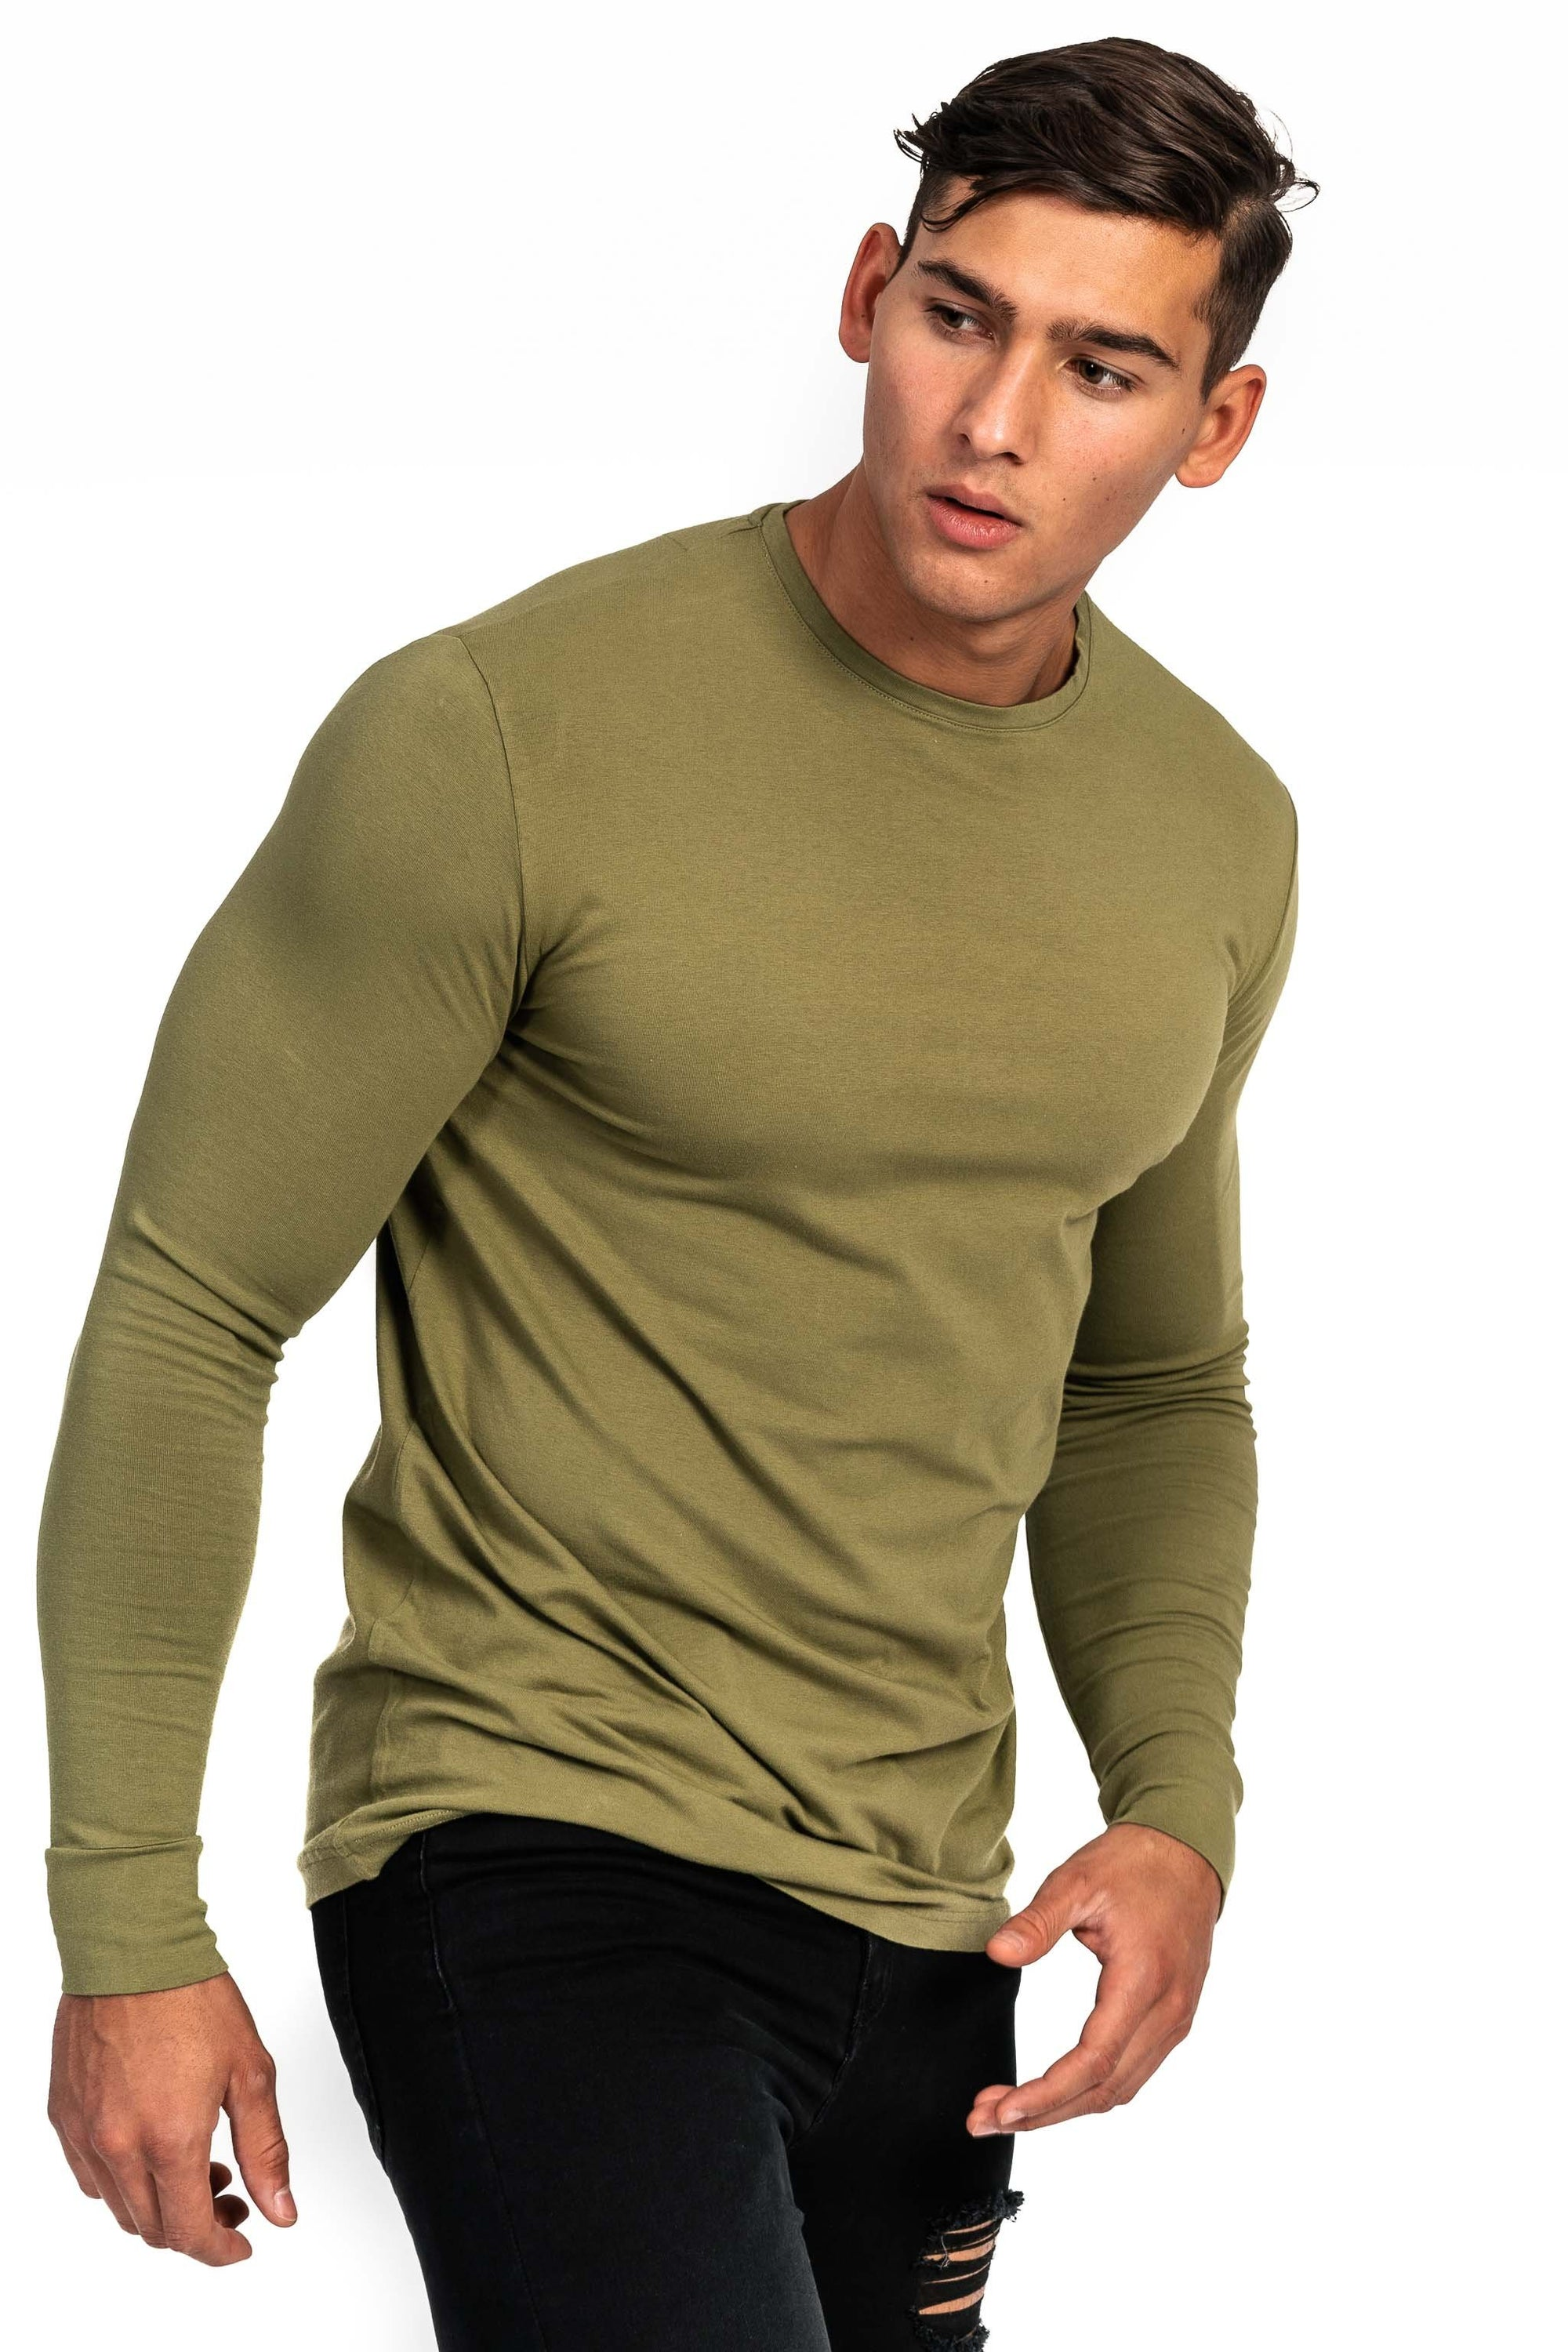 Mens Long Sleeve T Shirt - Khaki